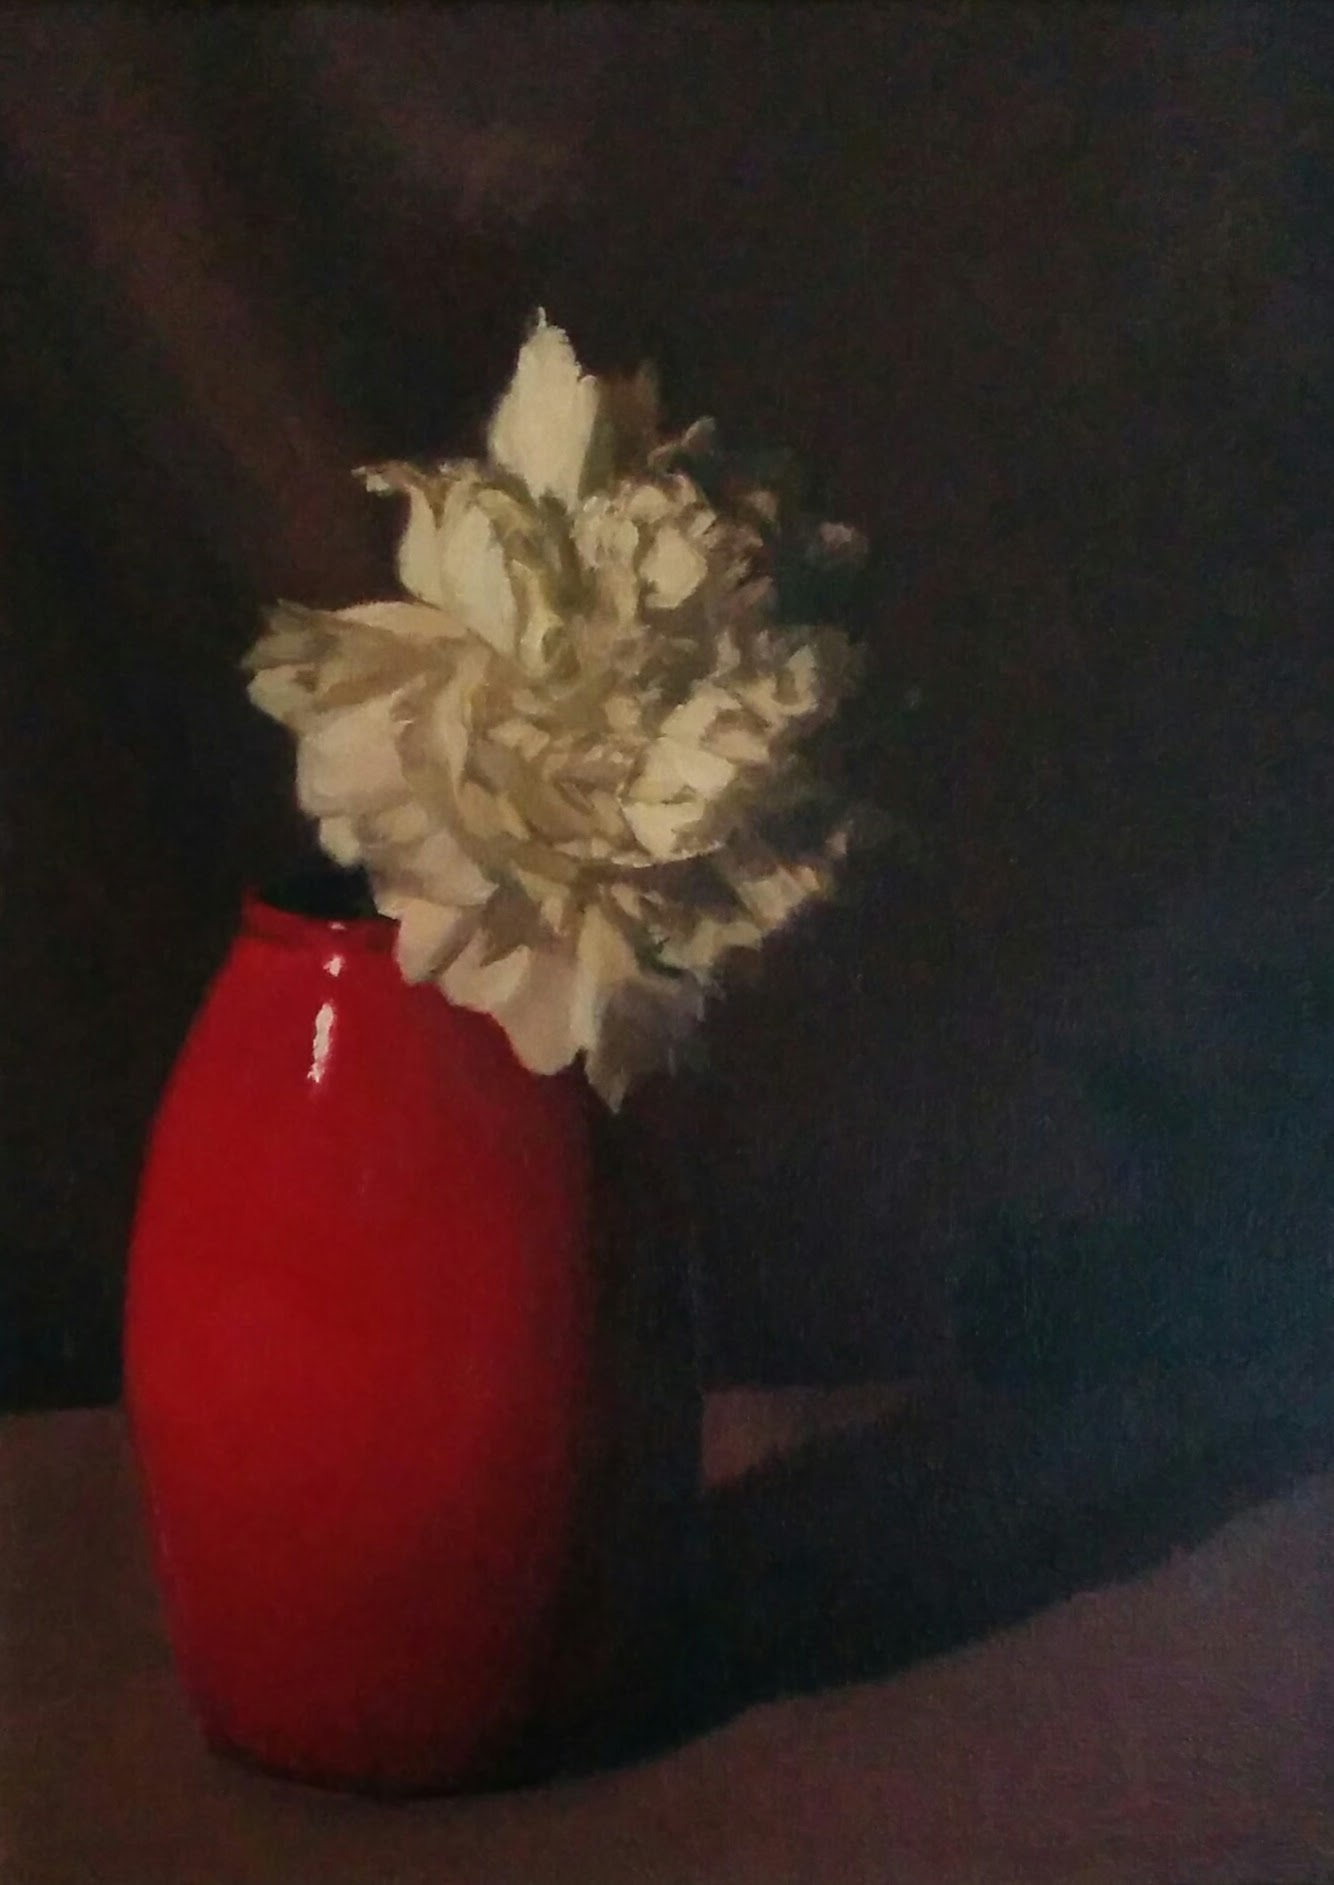 White Flower in Red Vase